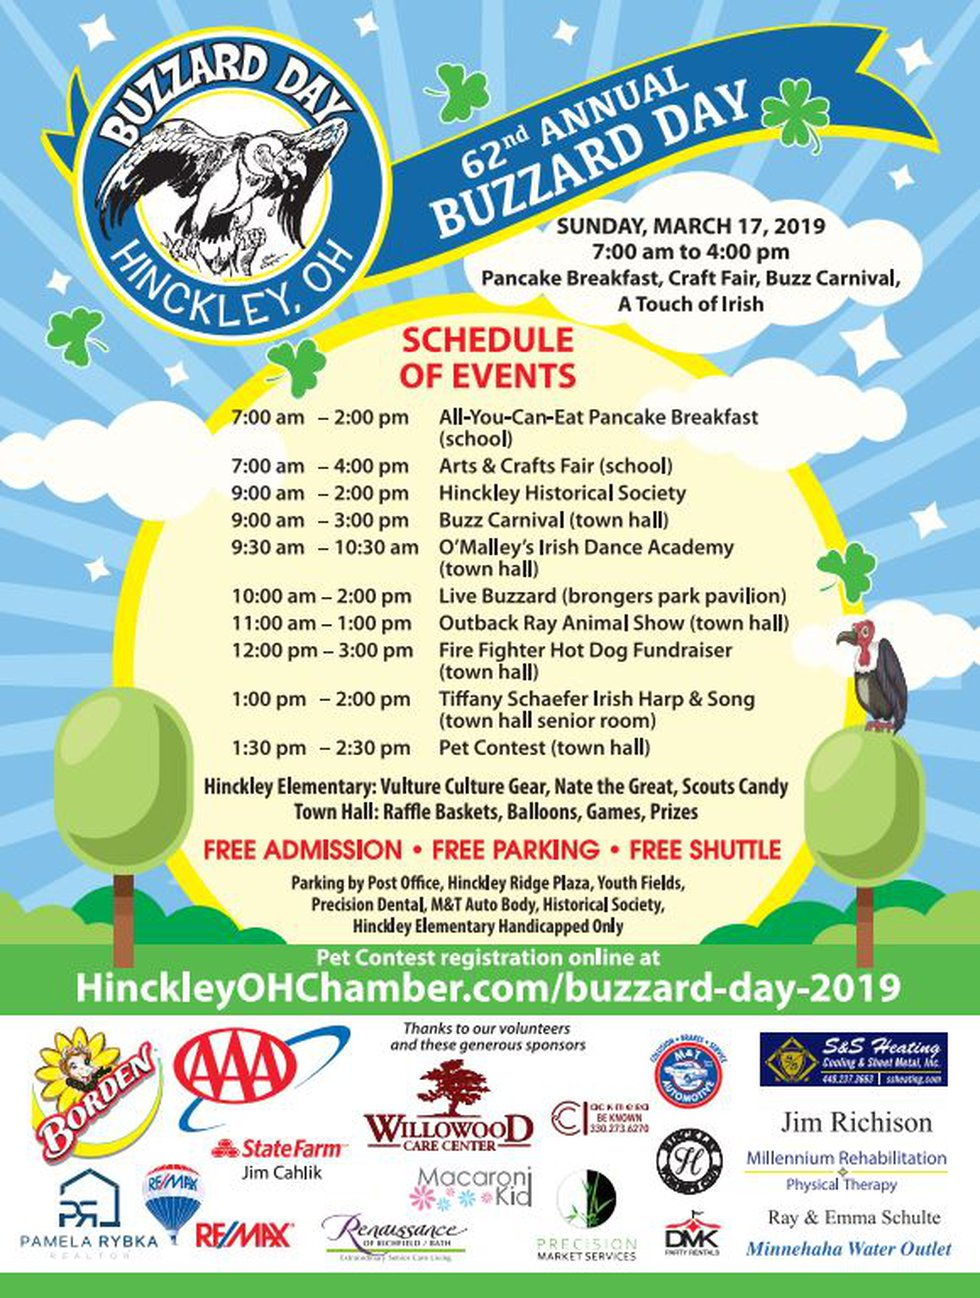 the 62nd annual Buzzard Day will be Sun. March 17 in Hinckley, Ohio.